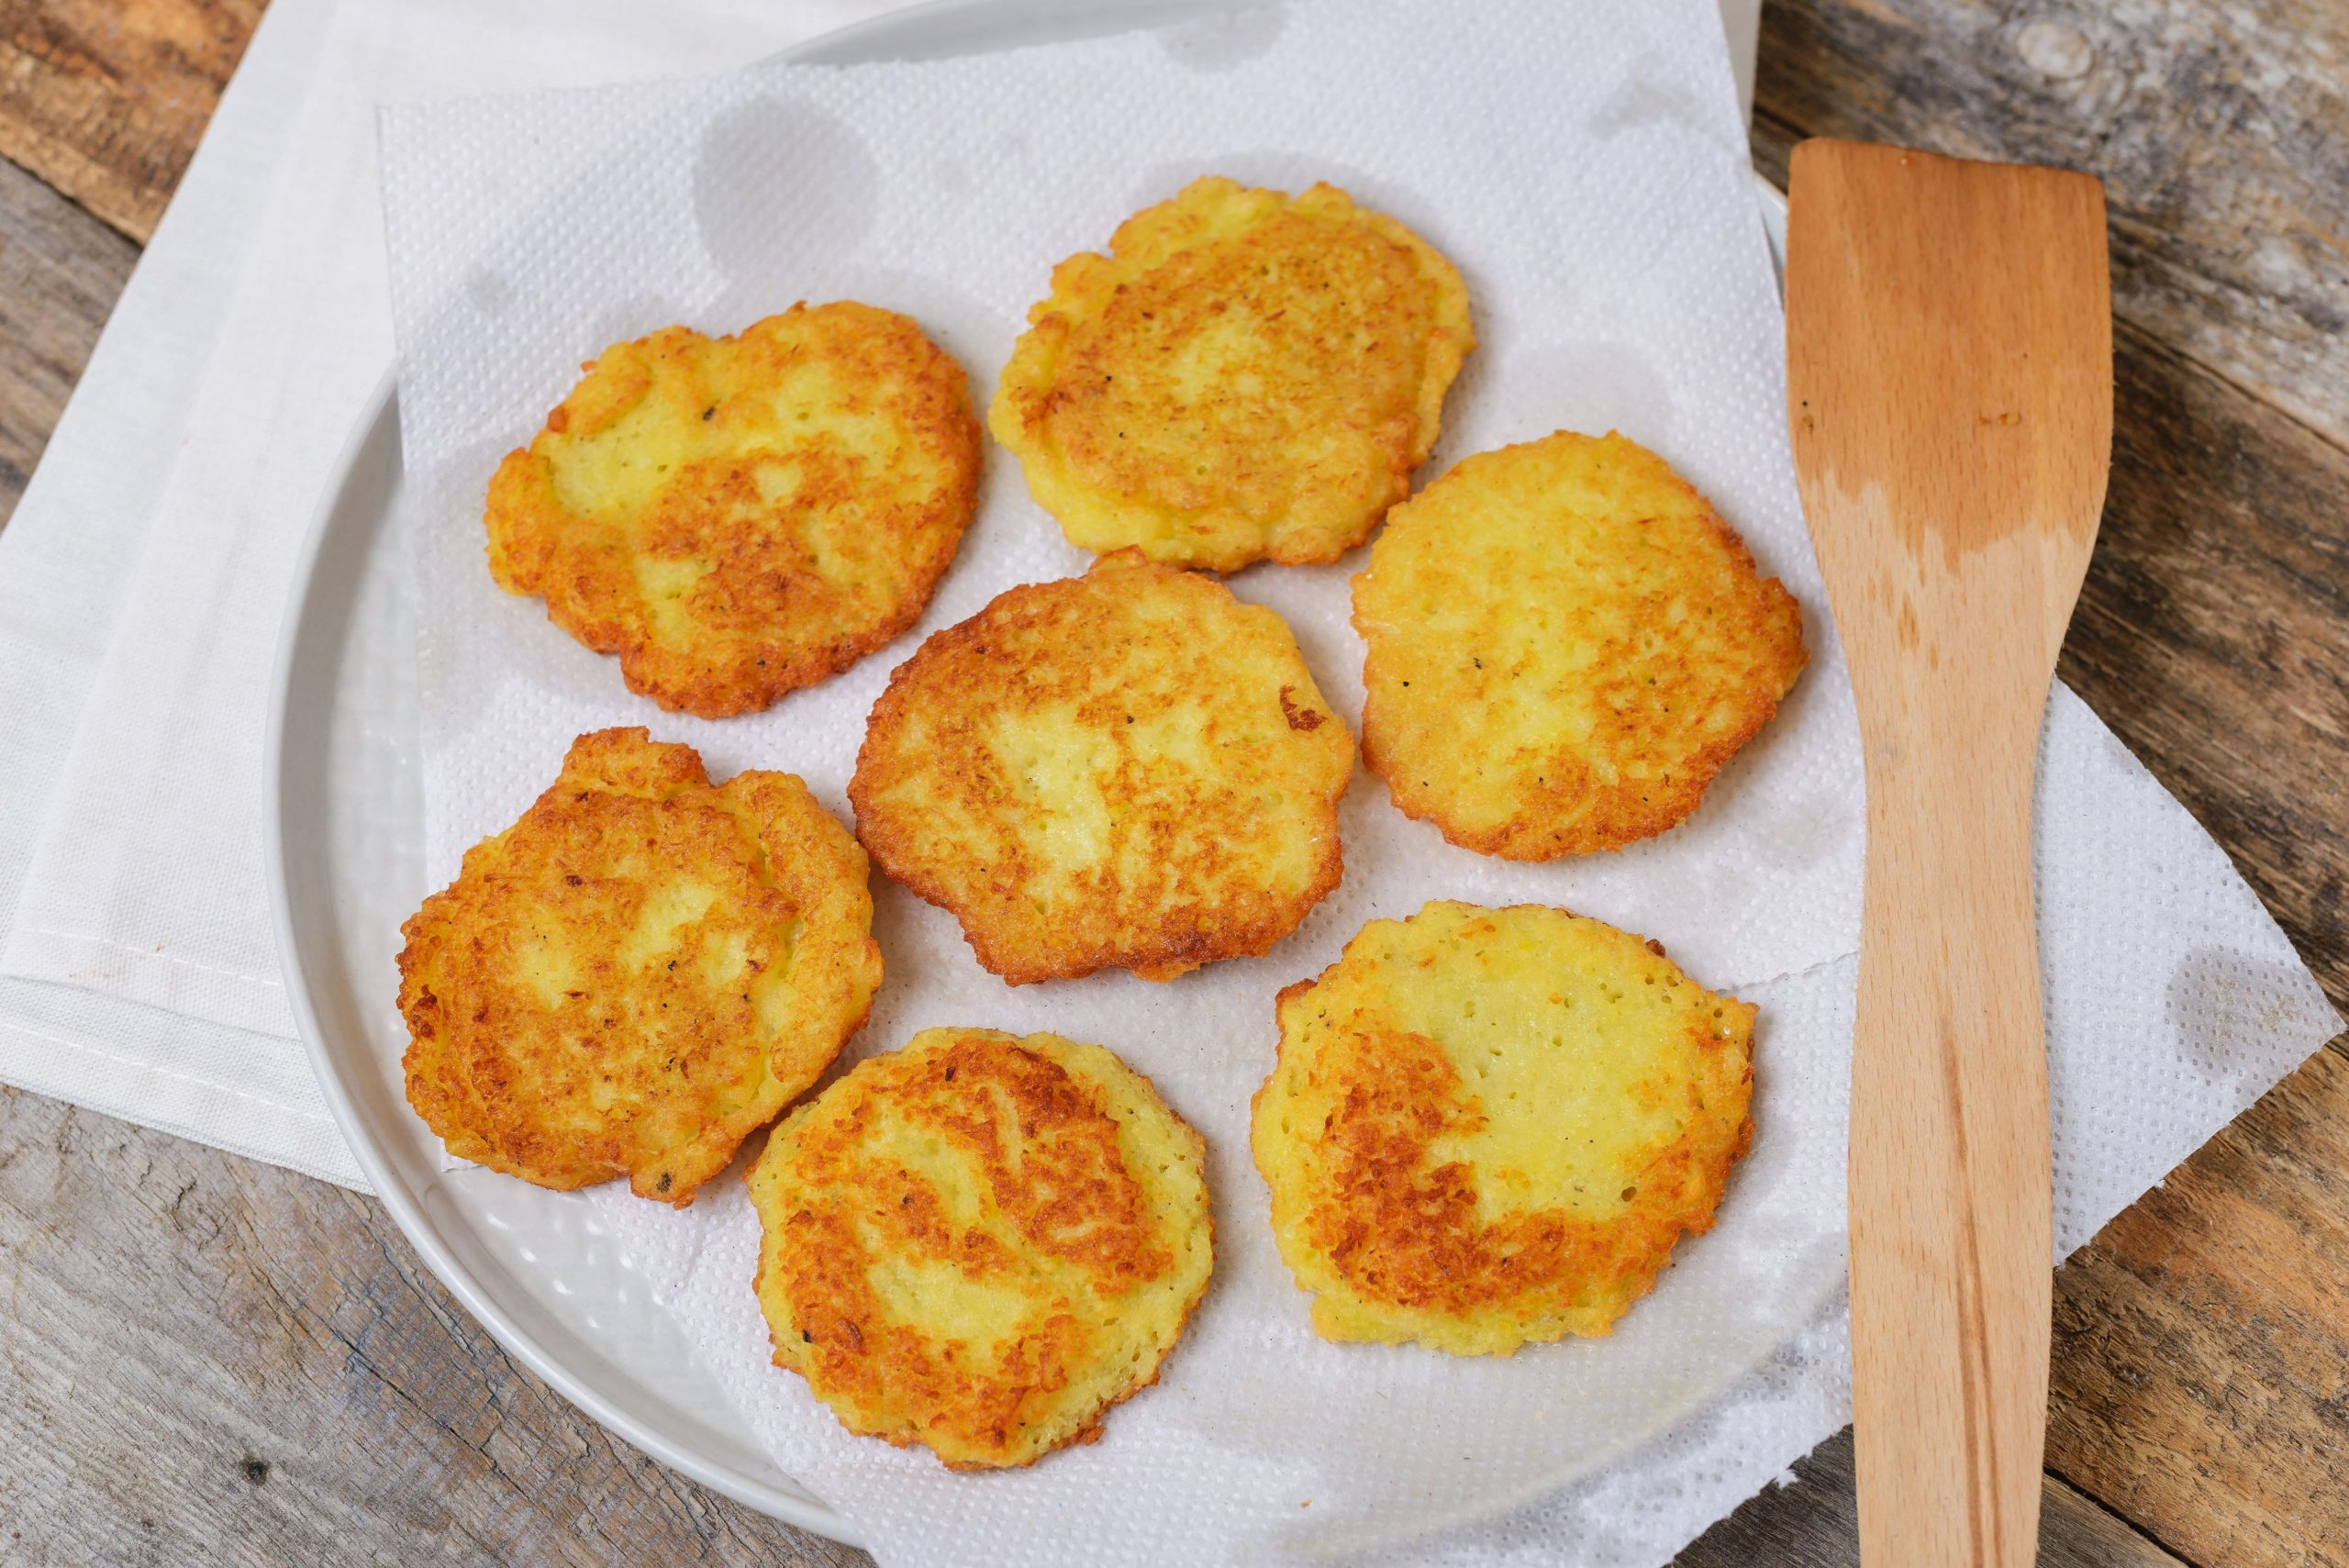 Traditional Hanukkah Potato Latkes - Recipes Potato Latkes Hanukkah